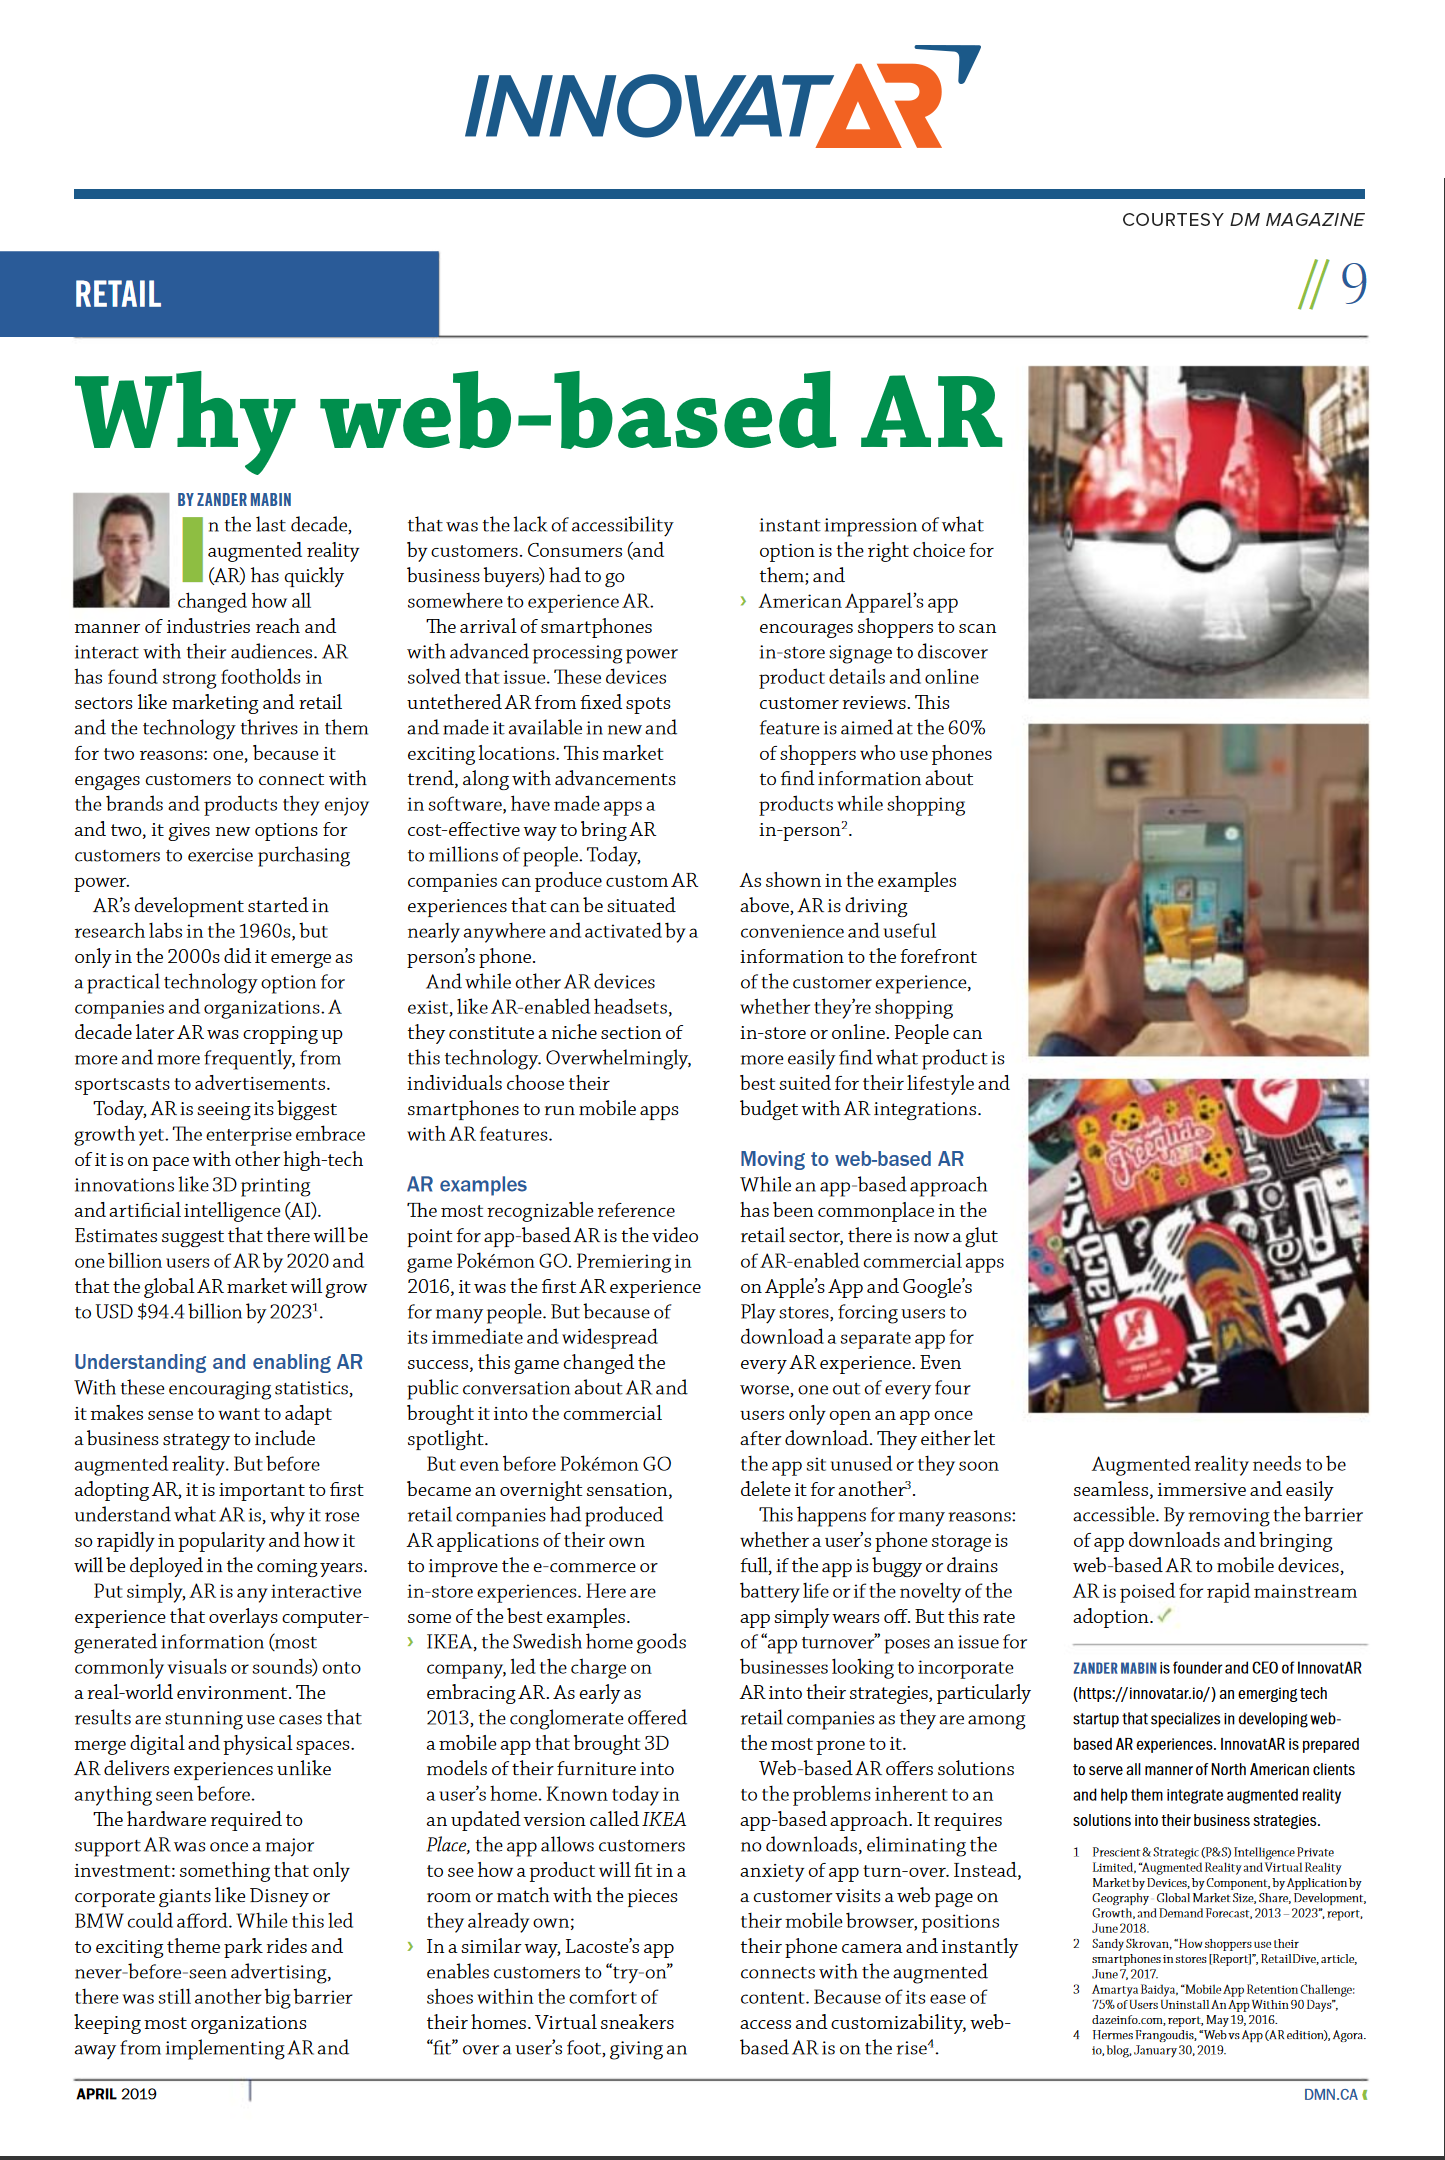 Why Web-based AR? (And How It Will Dominate Retail) - InnovatAR